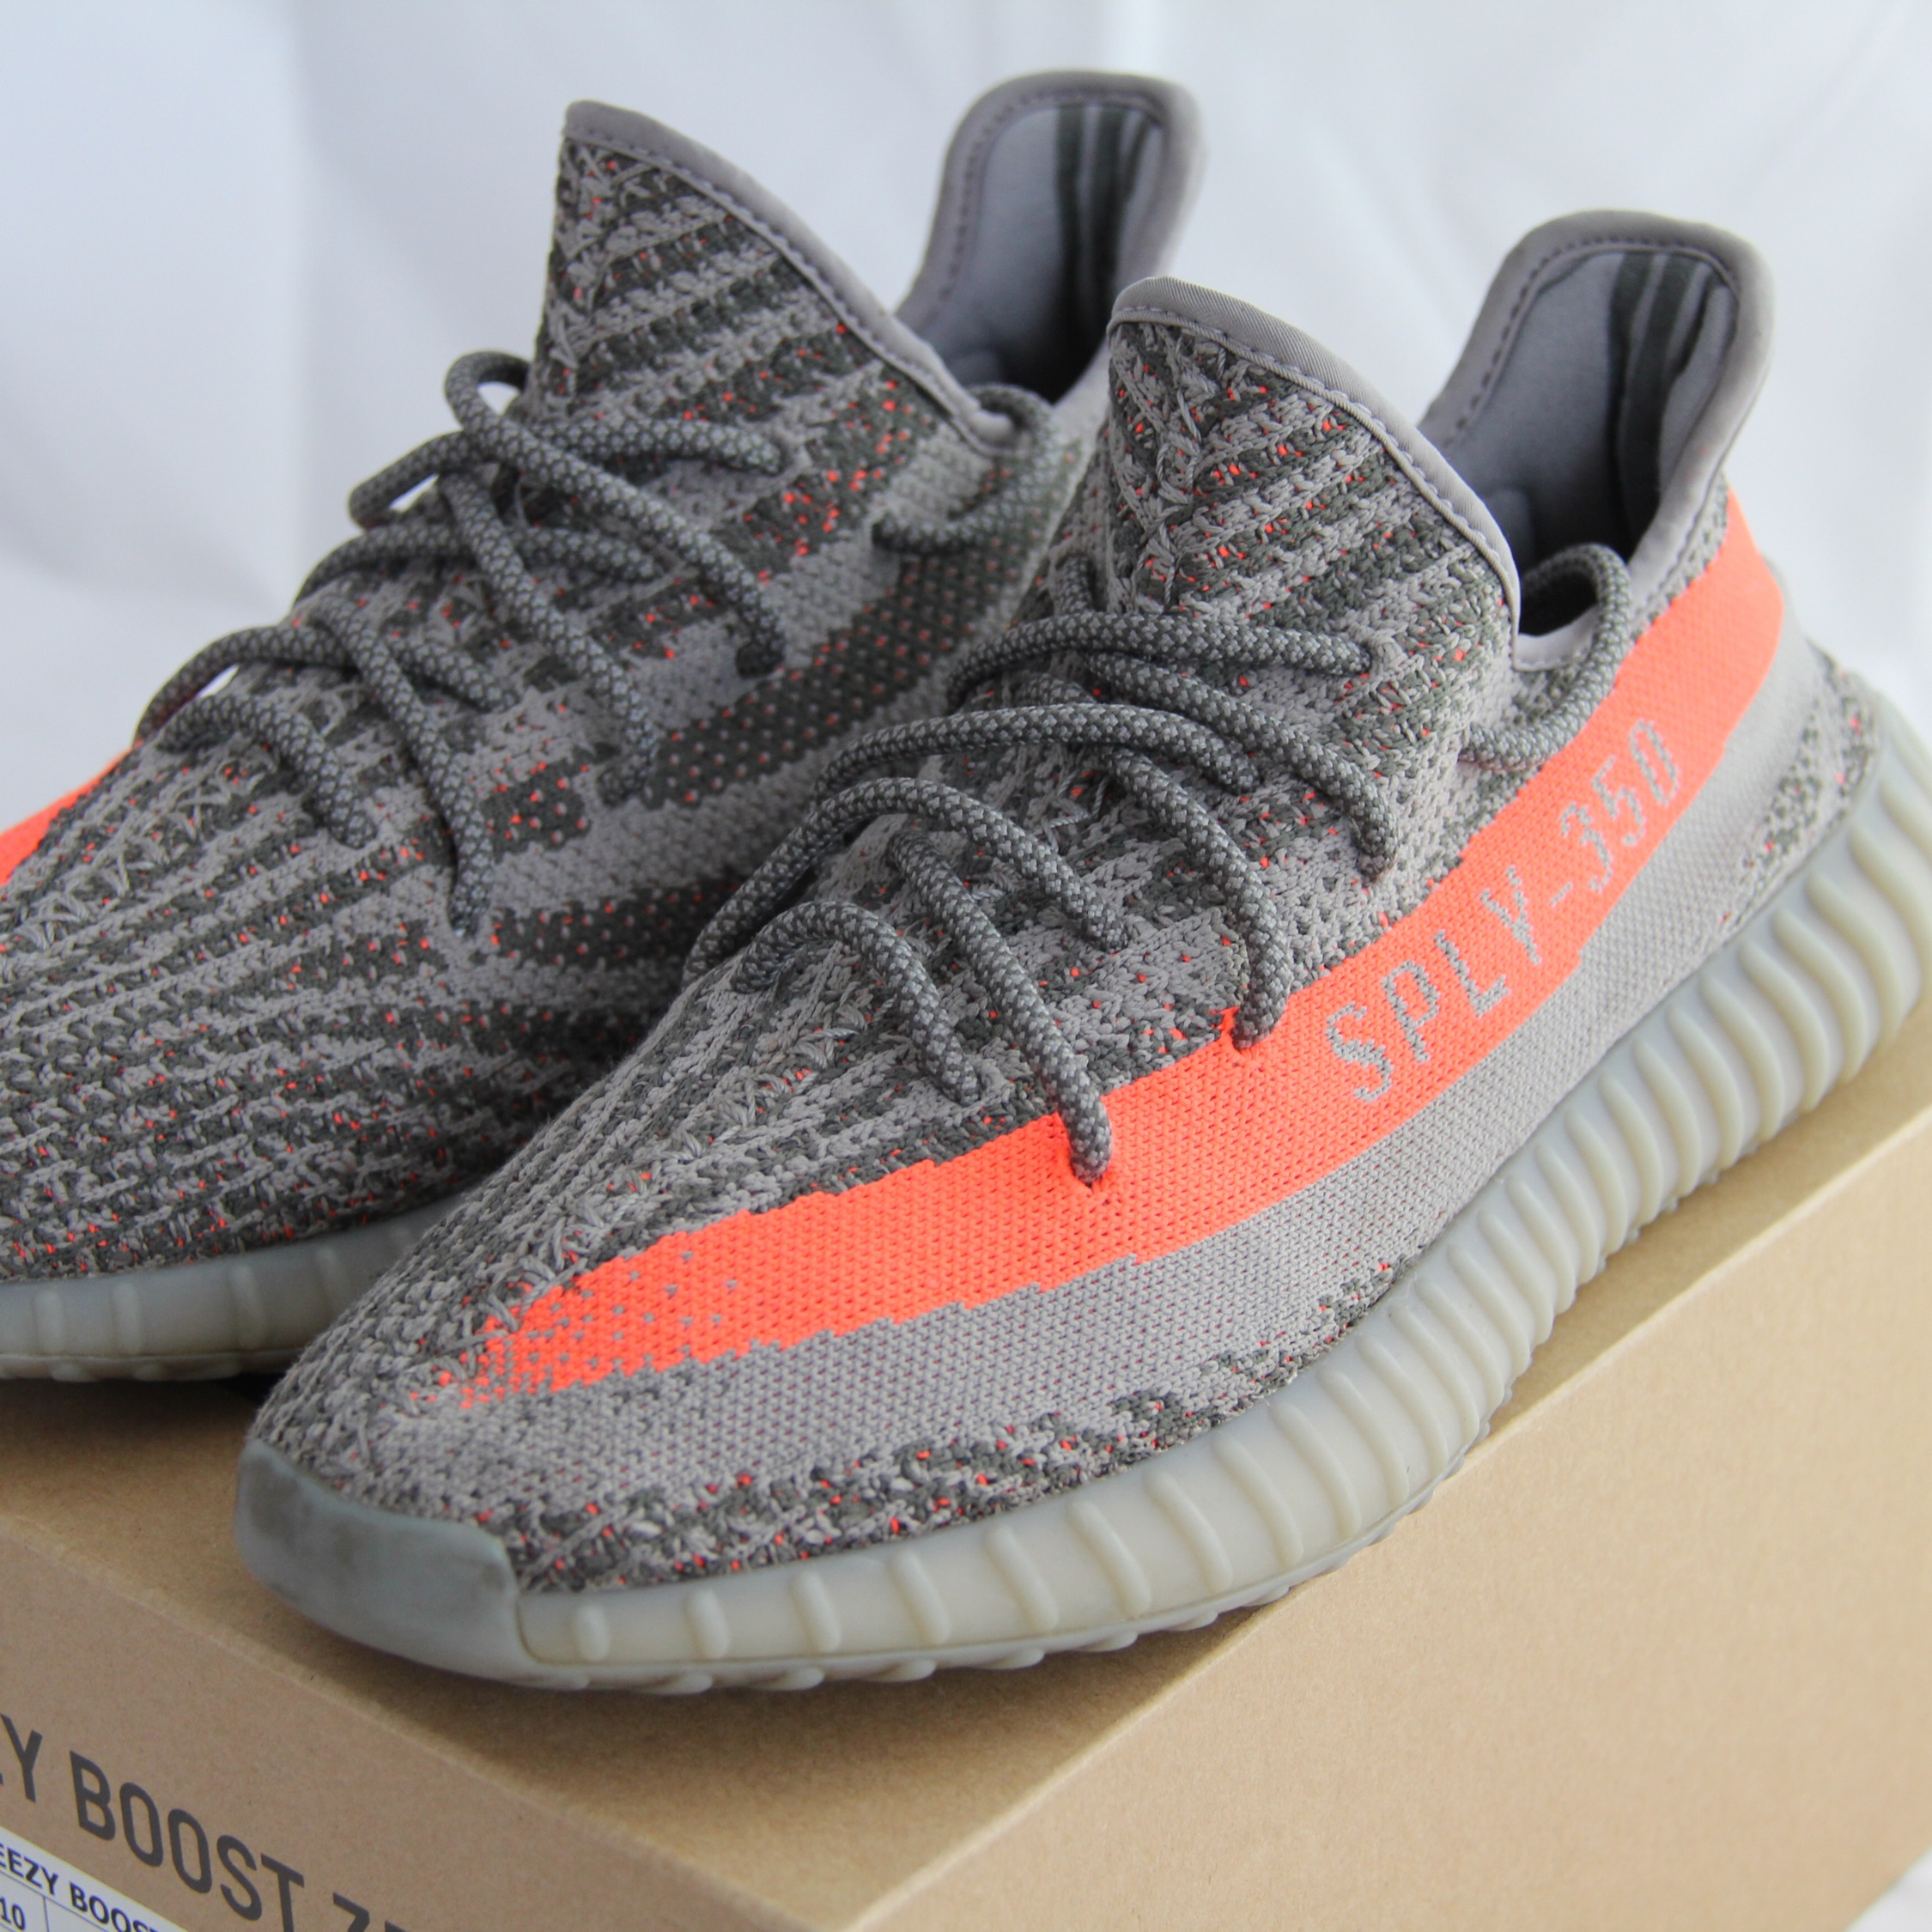 yeezy beluga 2.0 with jeans x